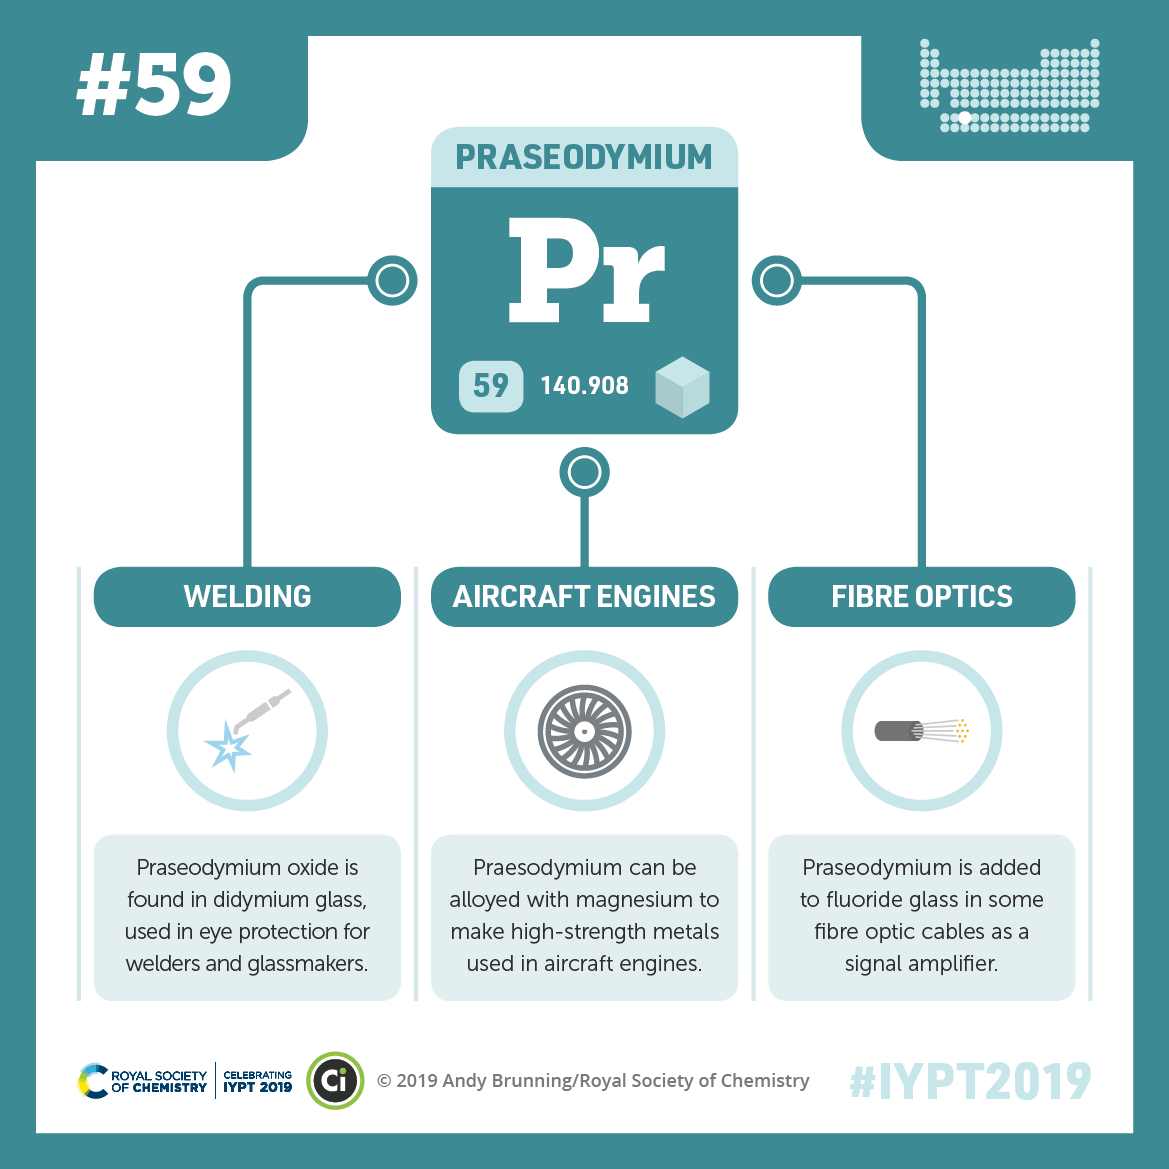 IYPT 2019 Elements 059: Praseodymium: Aircraft engines and fibre optics